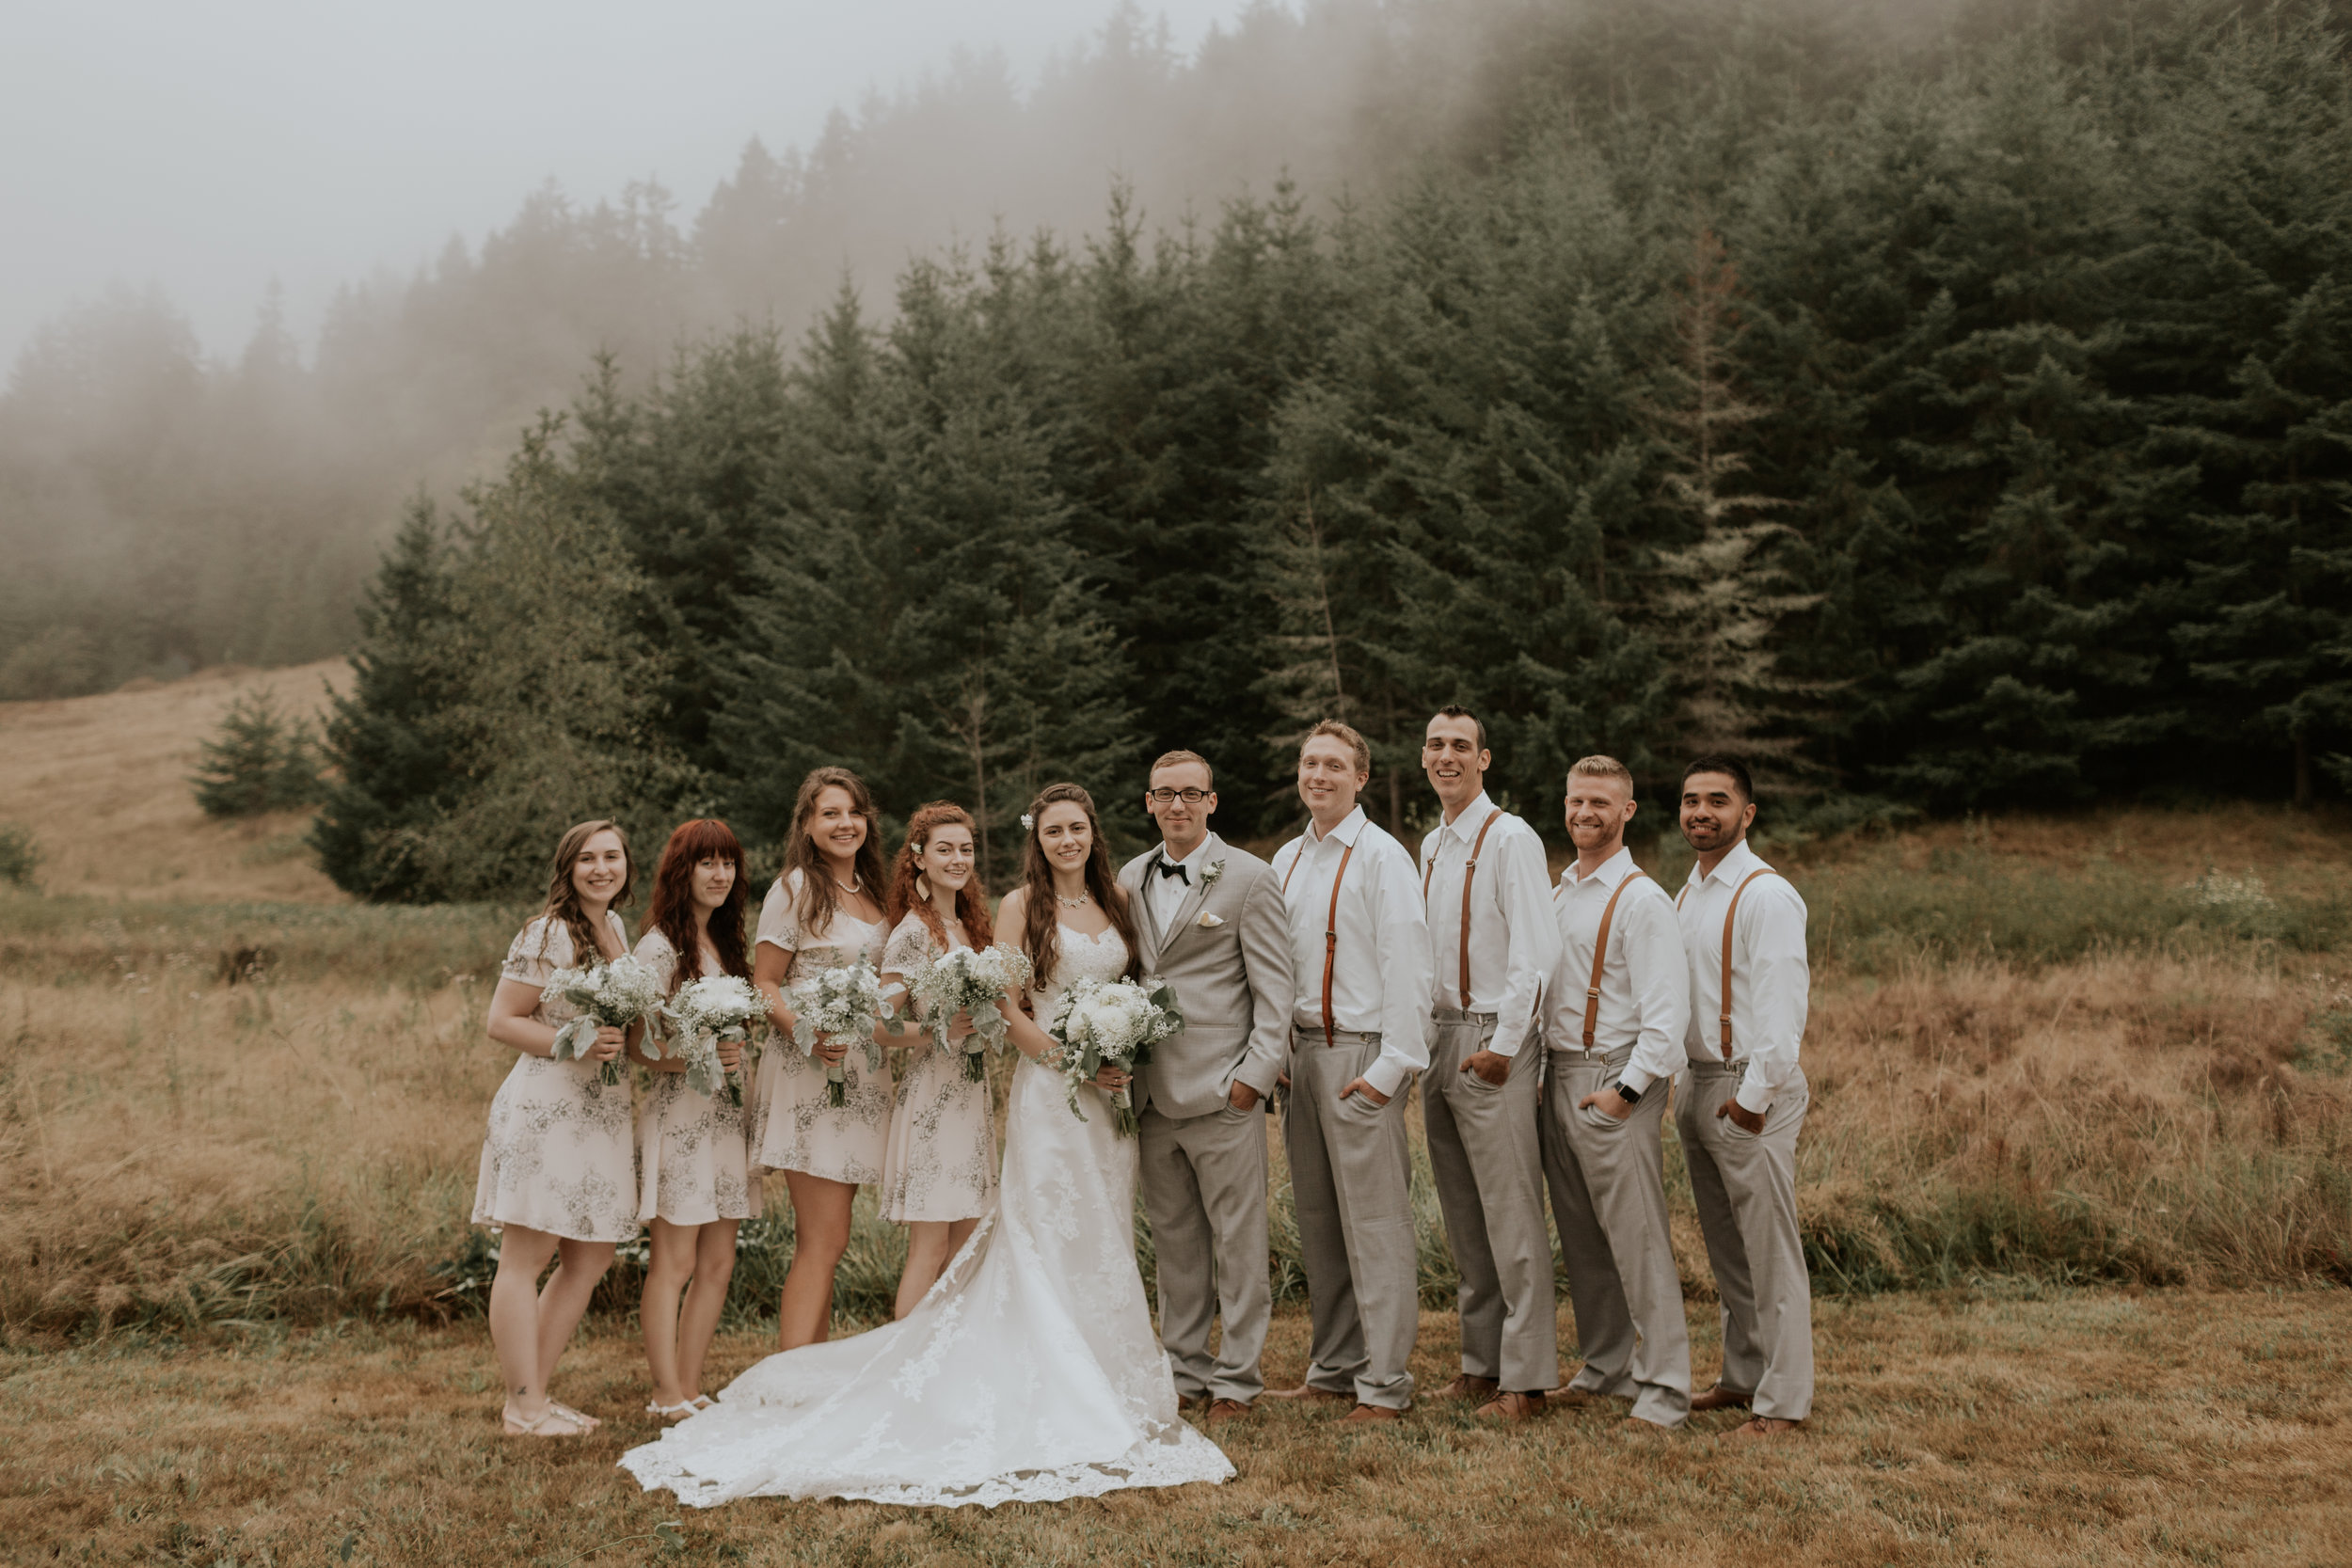 Port-Angeles-elopement-wedding-pnw-olympic-peninsula-photographer-portrait-kayladawnphoto-kayla-dawn-photography-olympic-national-park-121.jpg